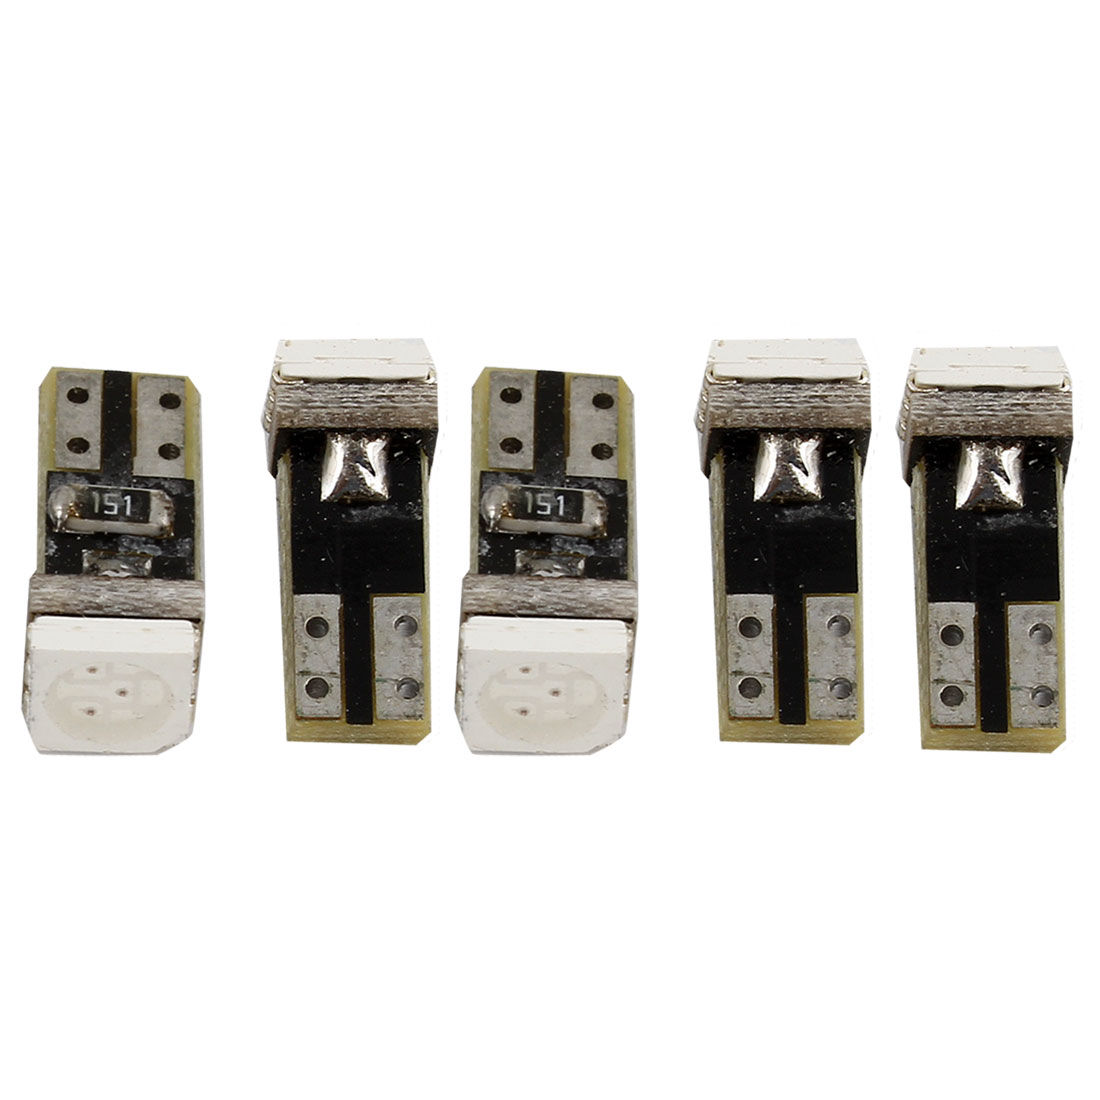 5 Pcs Yellow 5050 SMD LED Dashboard Gauge Light Turning Lamp Backup Bulb 12V for Car internal